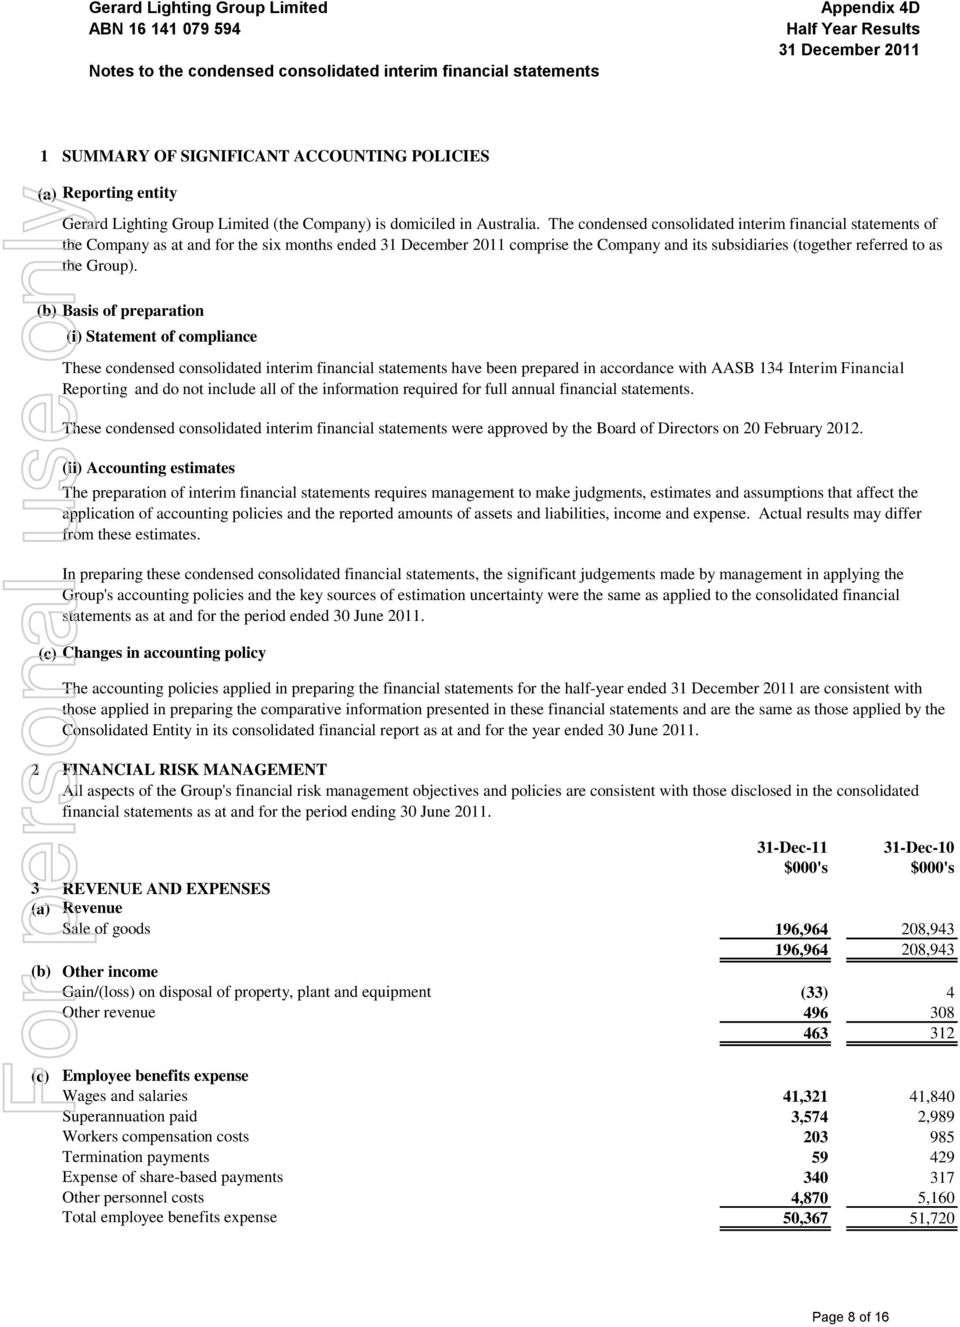 The condensed consolidated interim financial statements of the Company as at and for the six months ended 31 December 2011 comprise the Company and its subsidiaries (together referred to as the